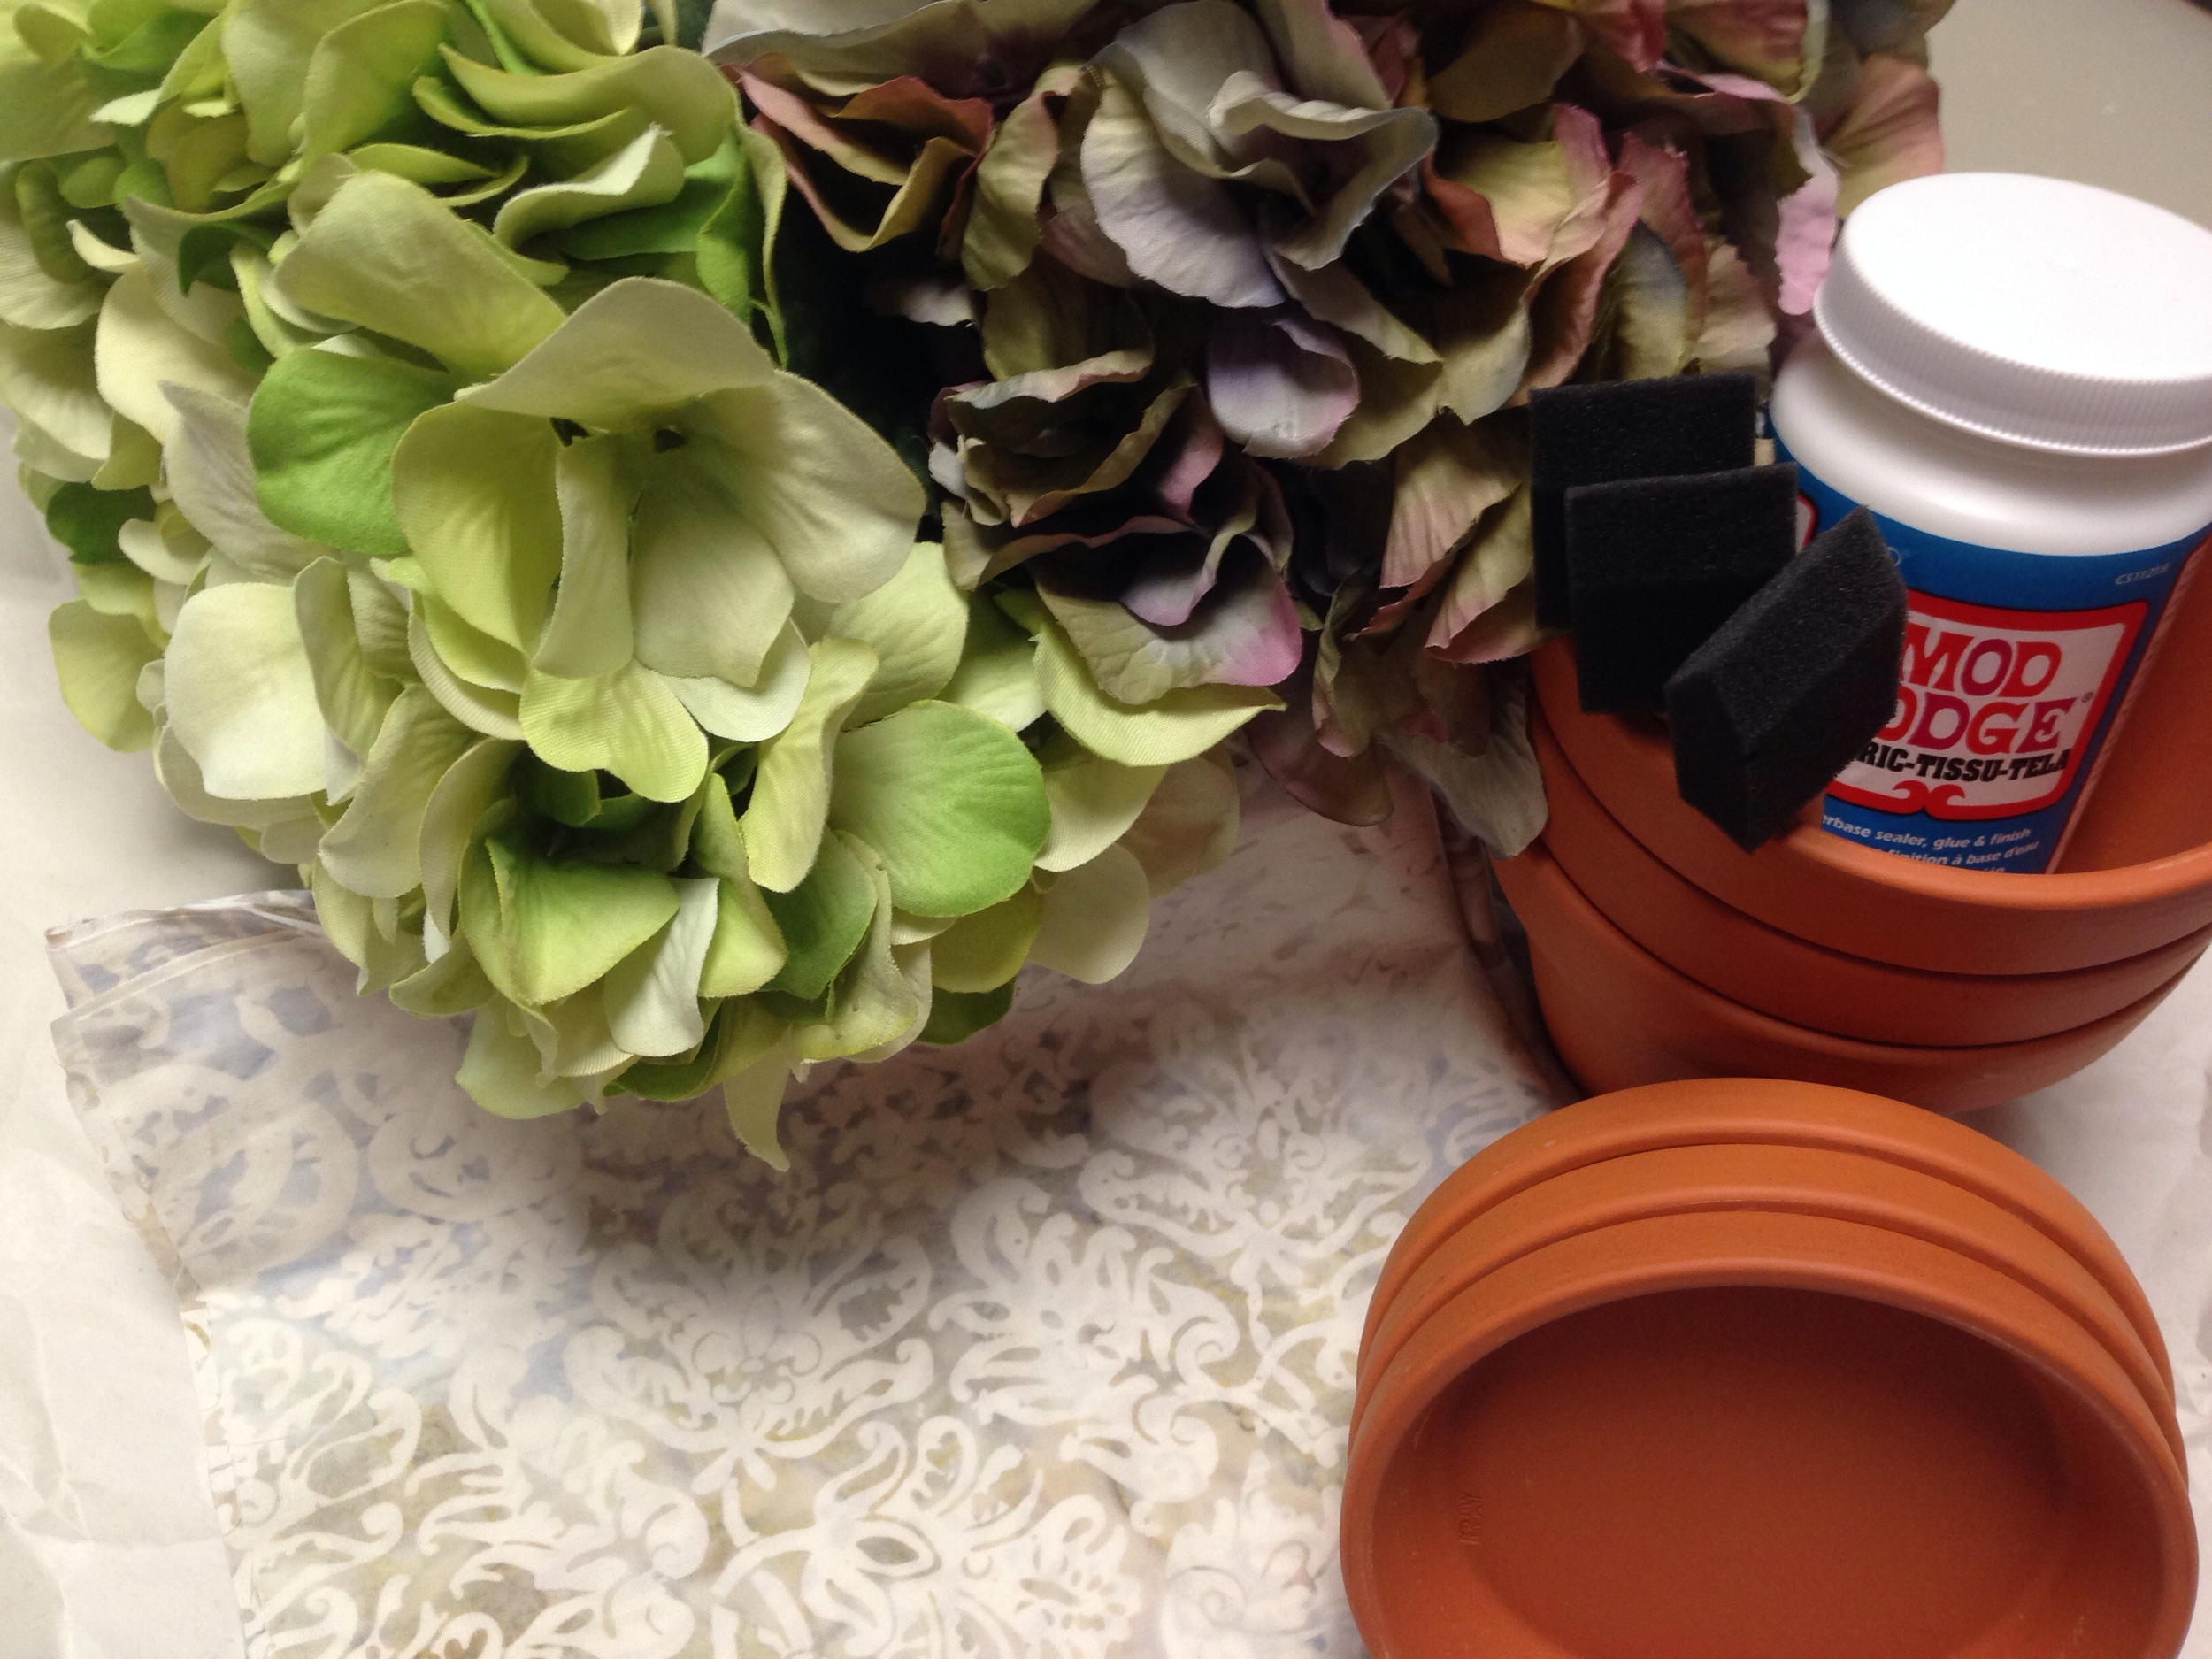 All your supplies needed to modge podge terracotta pots.